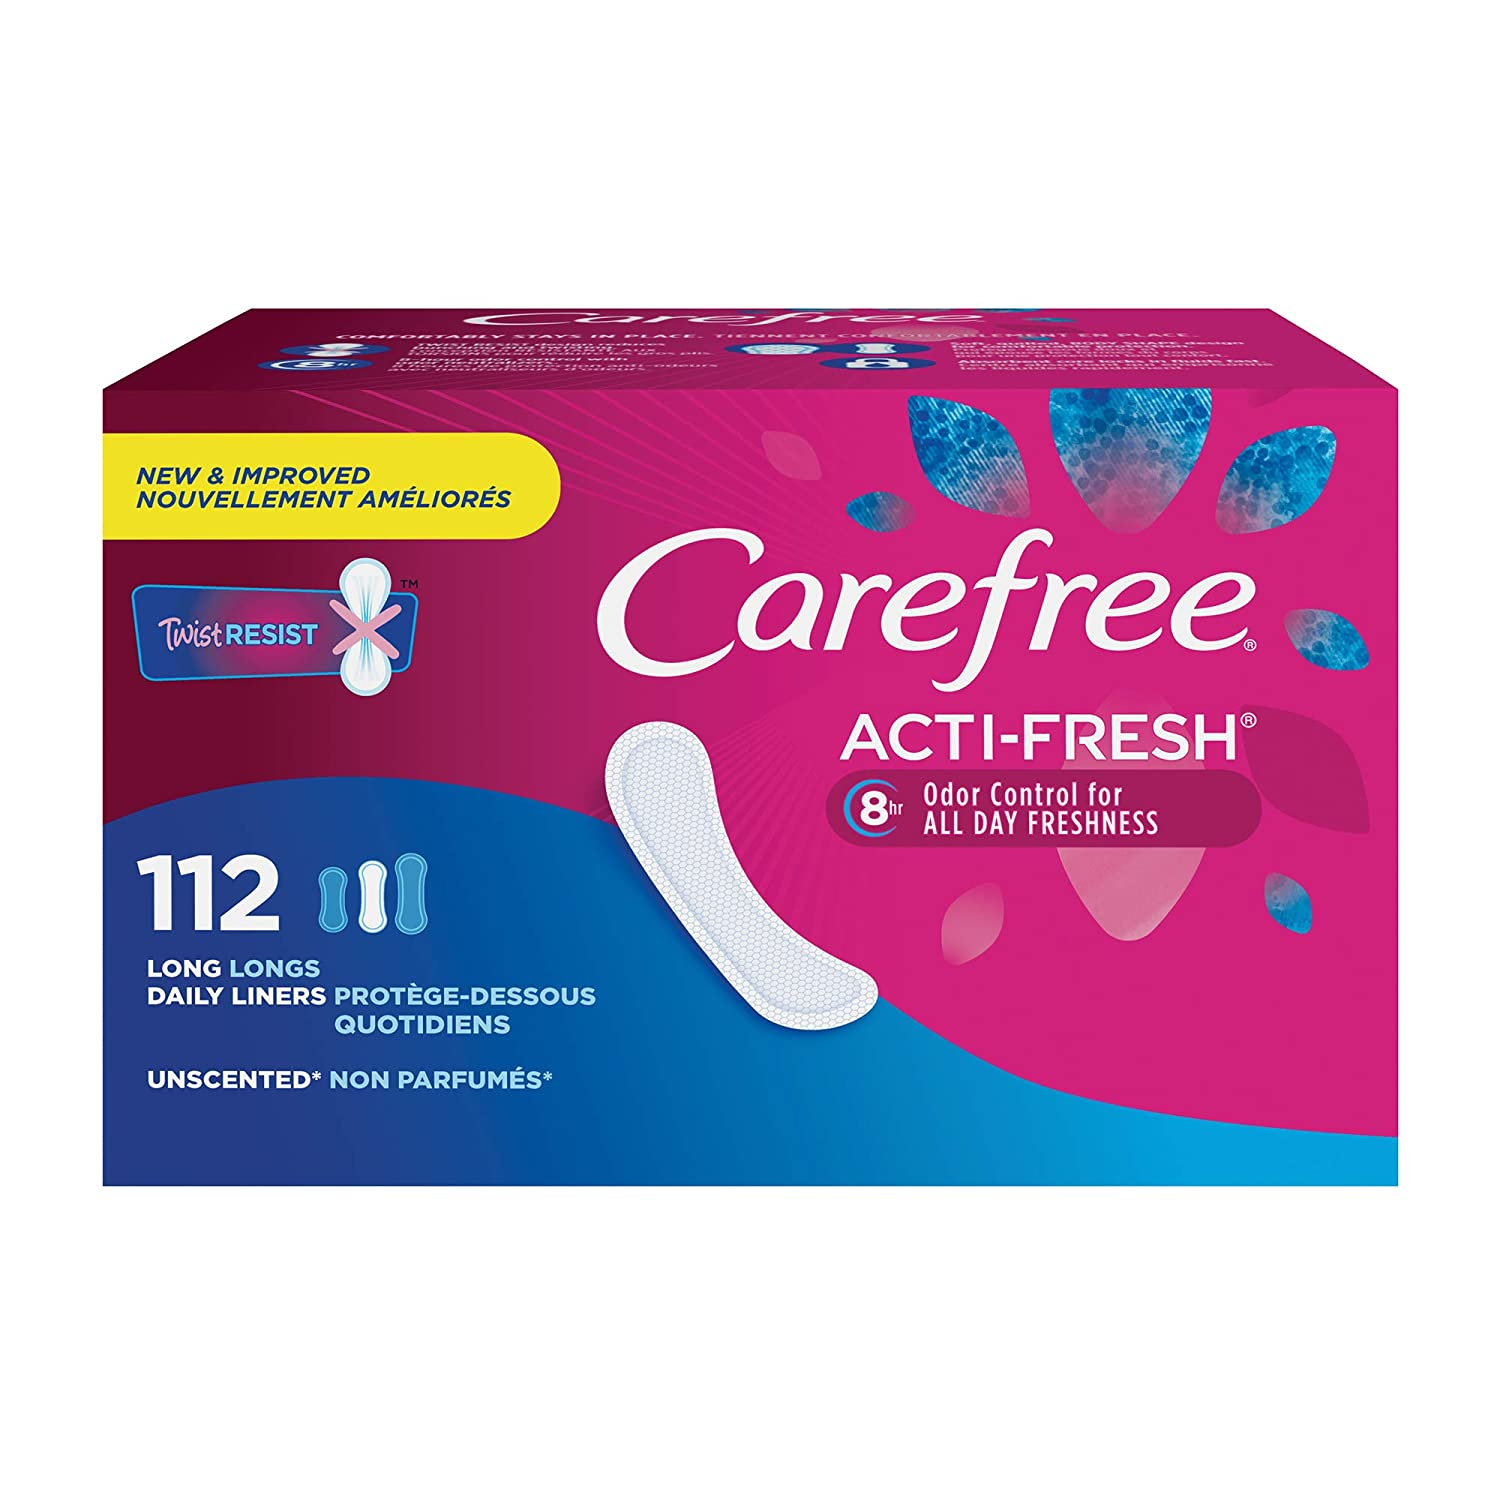 Carefree Acti-Fresh Body Shaped Panty Liners, Flexible Protection That Molds to Your Body, Long, 112 Count